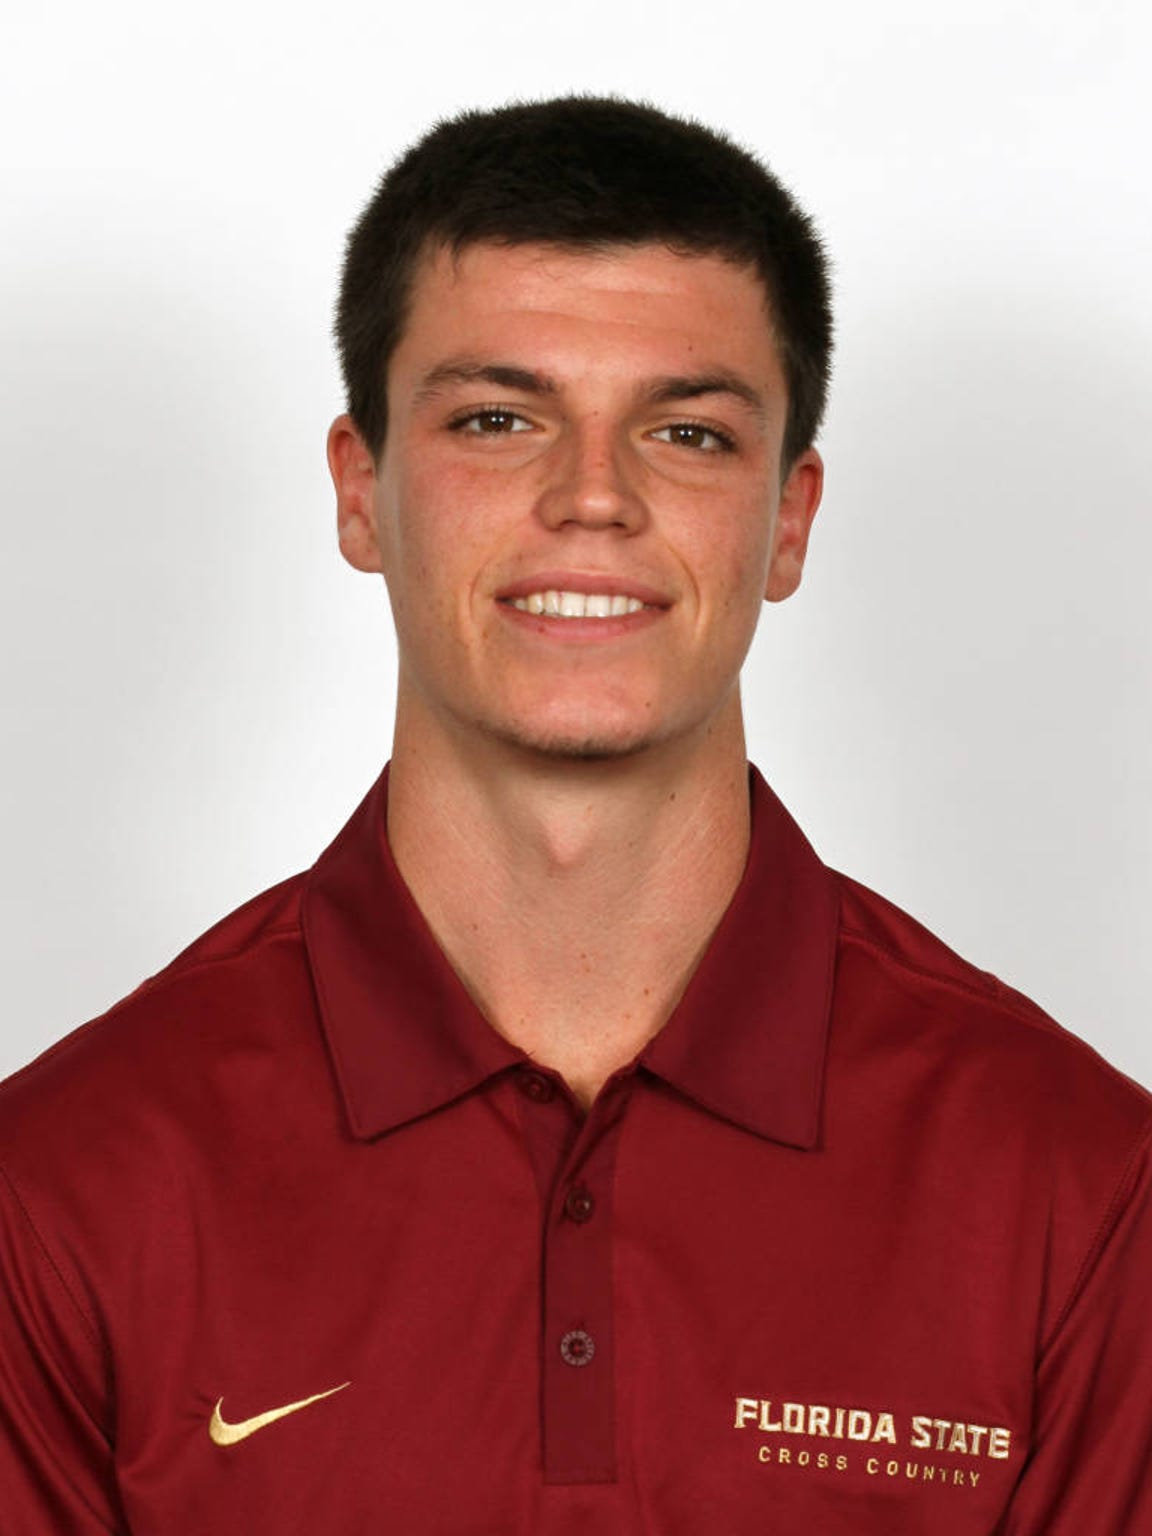 Florida State junior middle distance runner Matt Magee